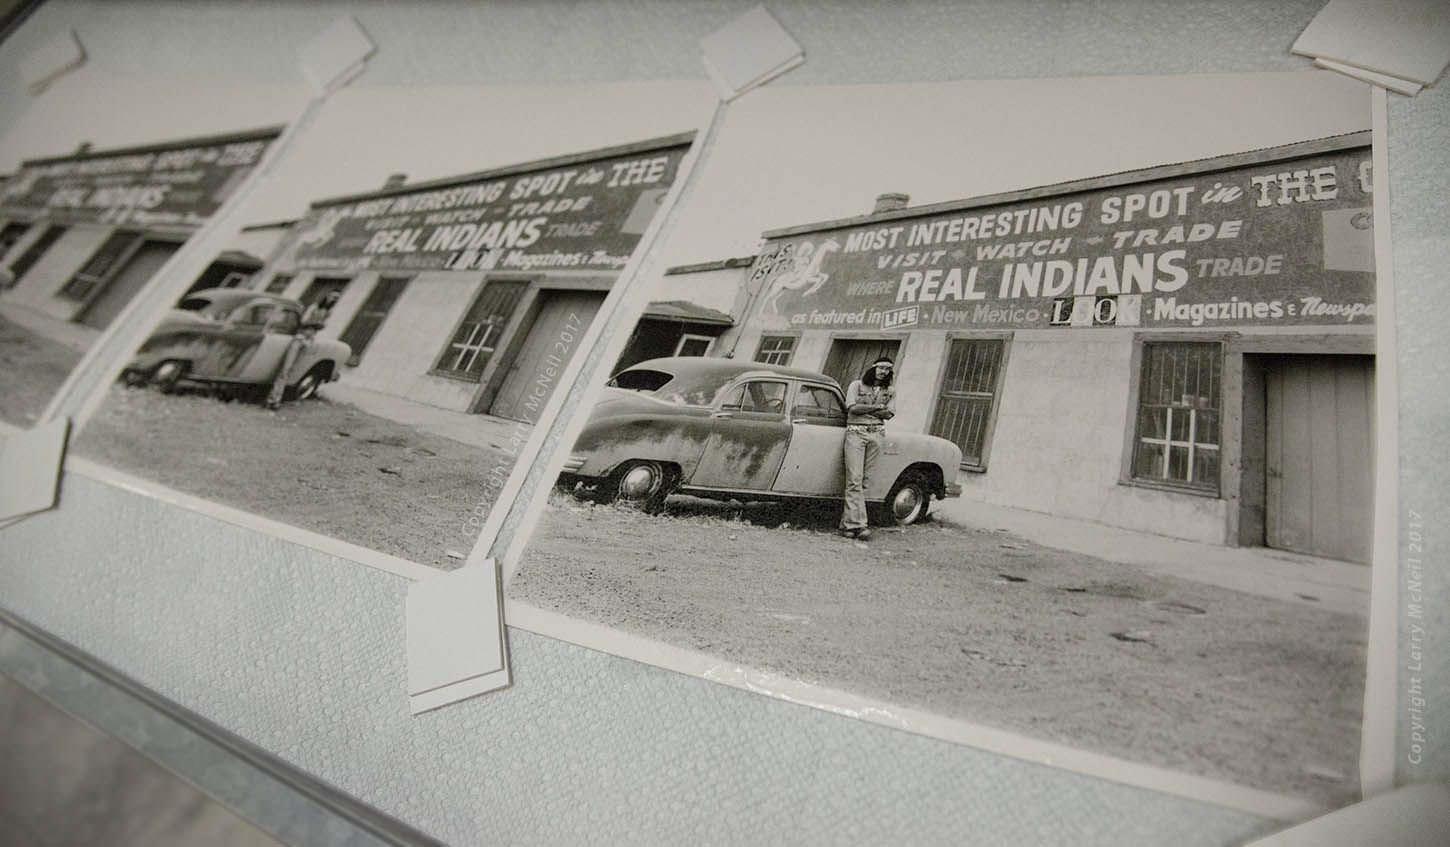 real-indians-prints-drying-wet-1450w.jpg